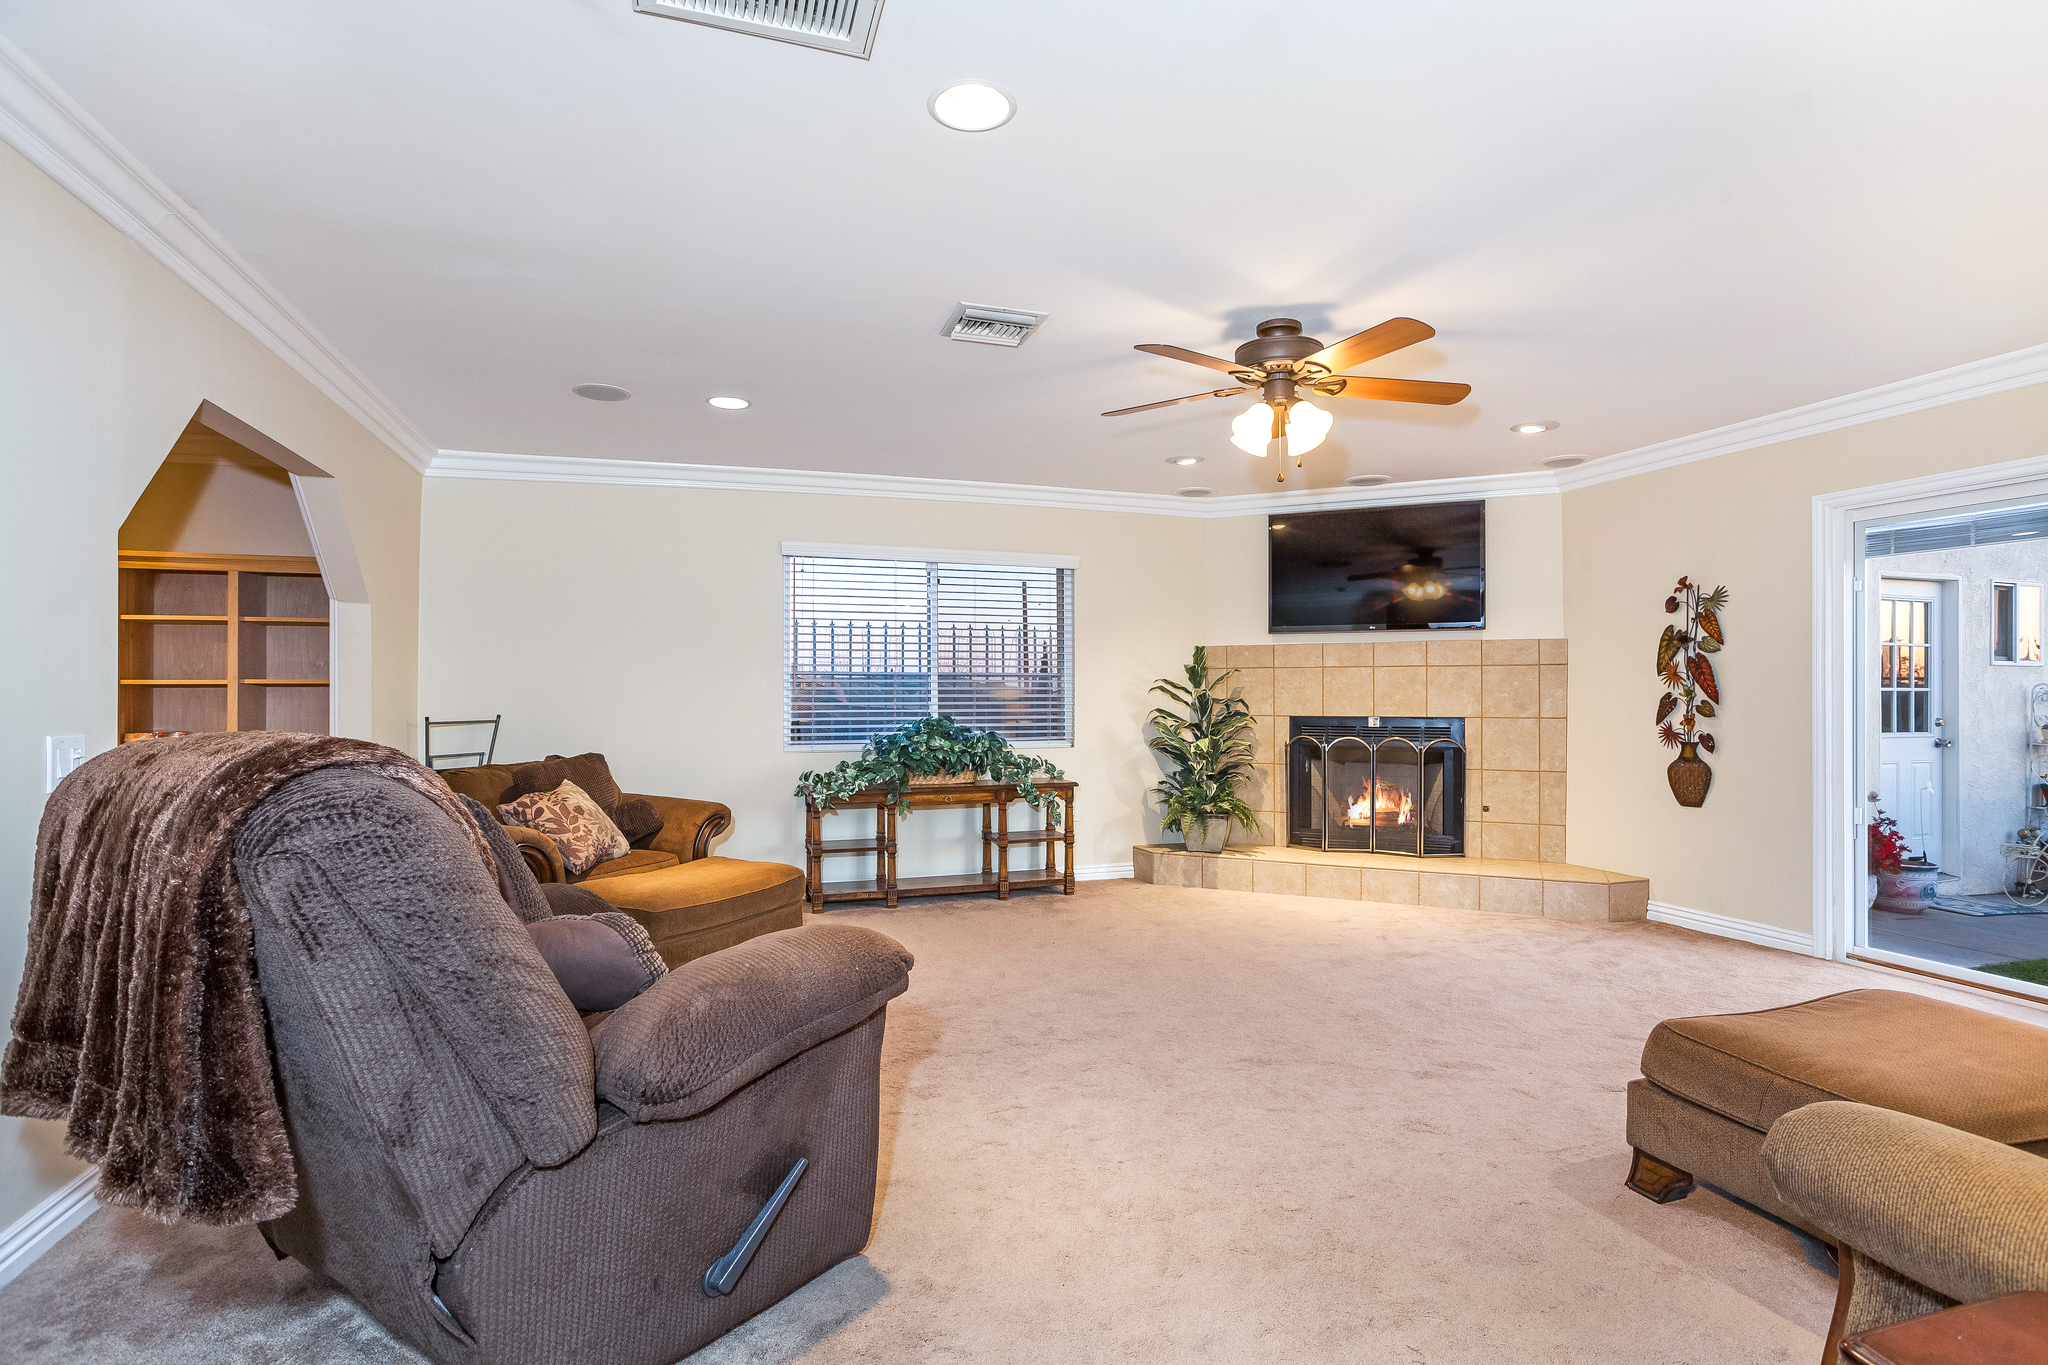 reverse view of family room with fireplace